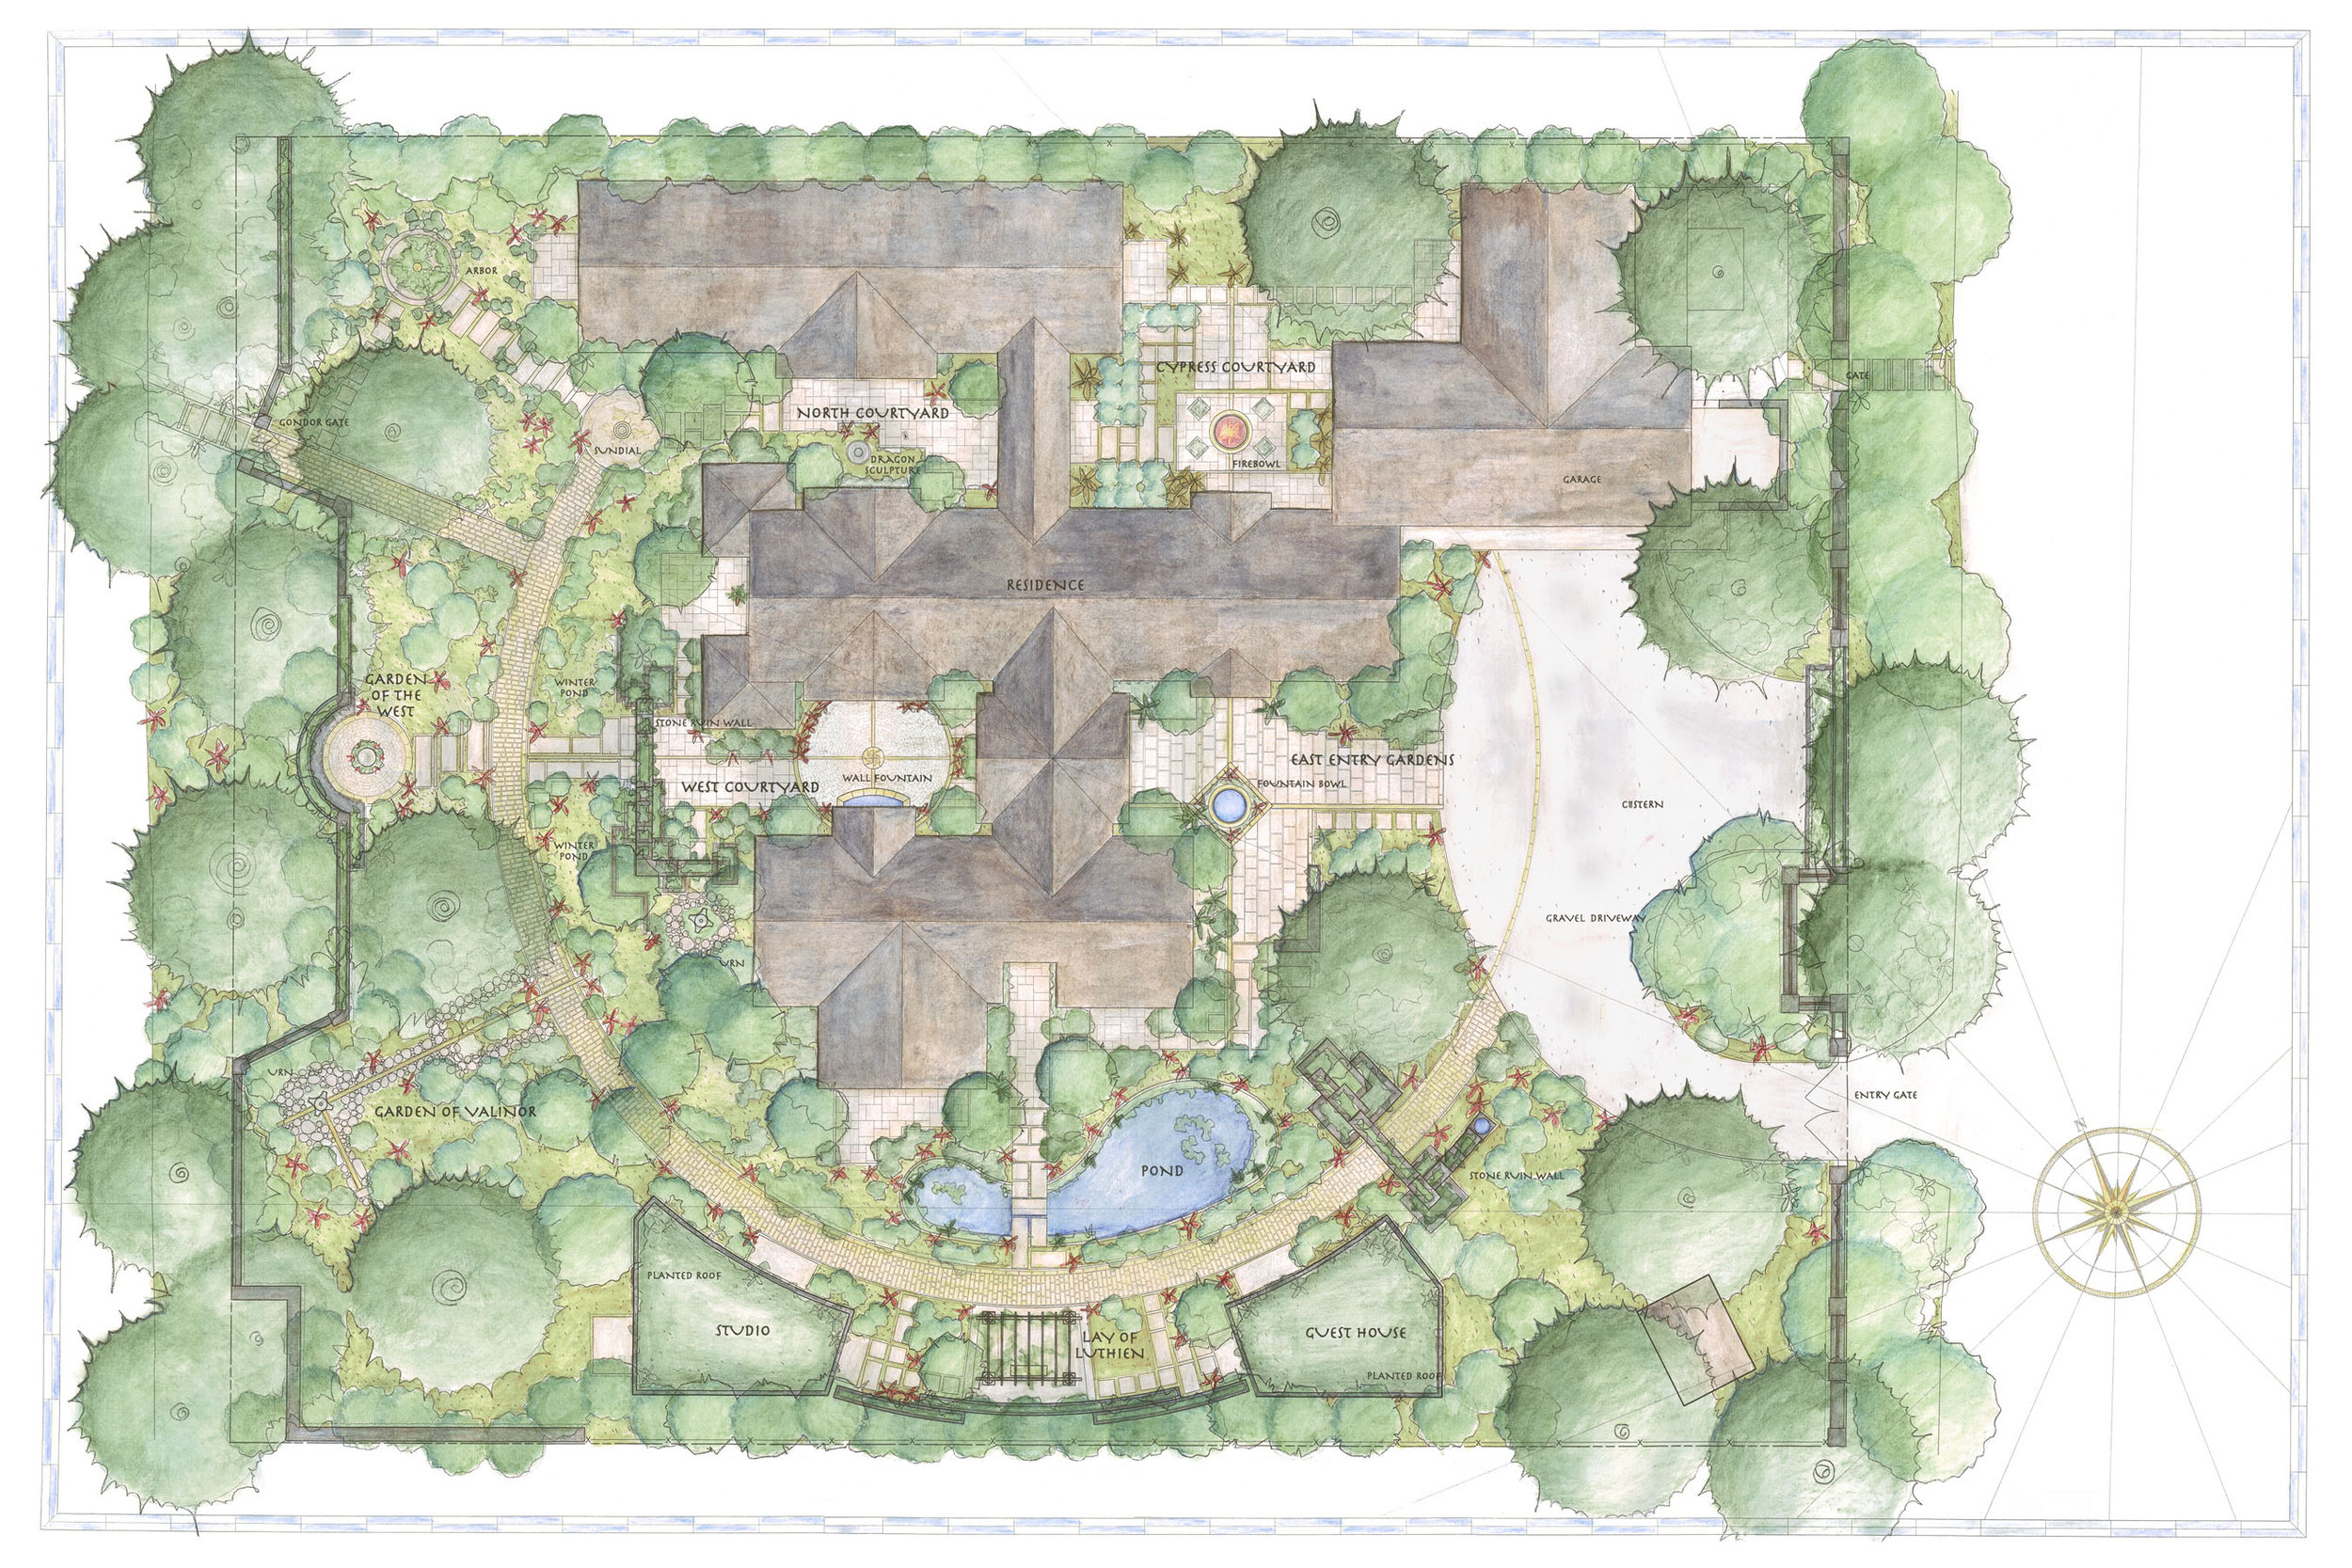 The master plan shows the circular path that organizes the spaces throughout the landscape.